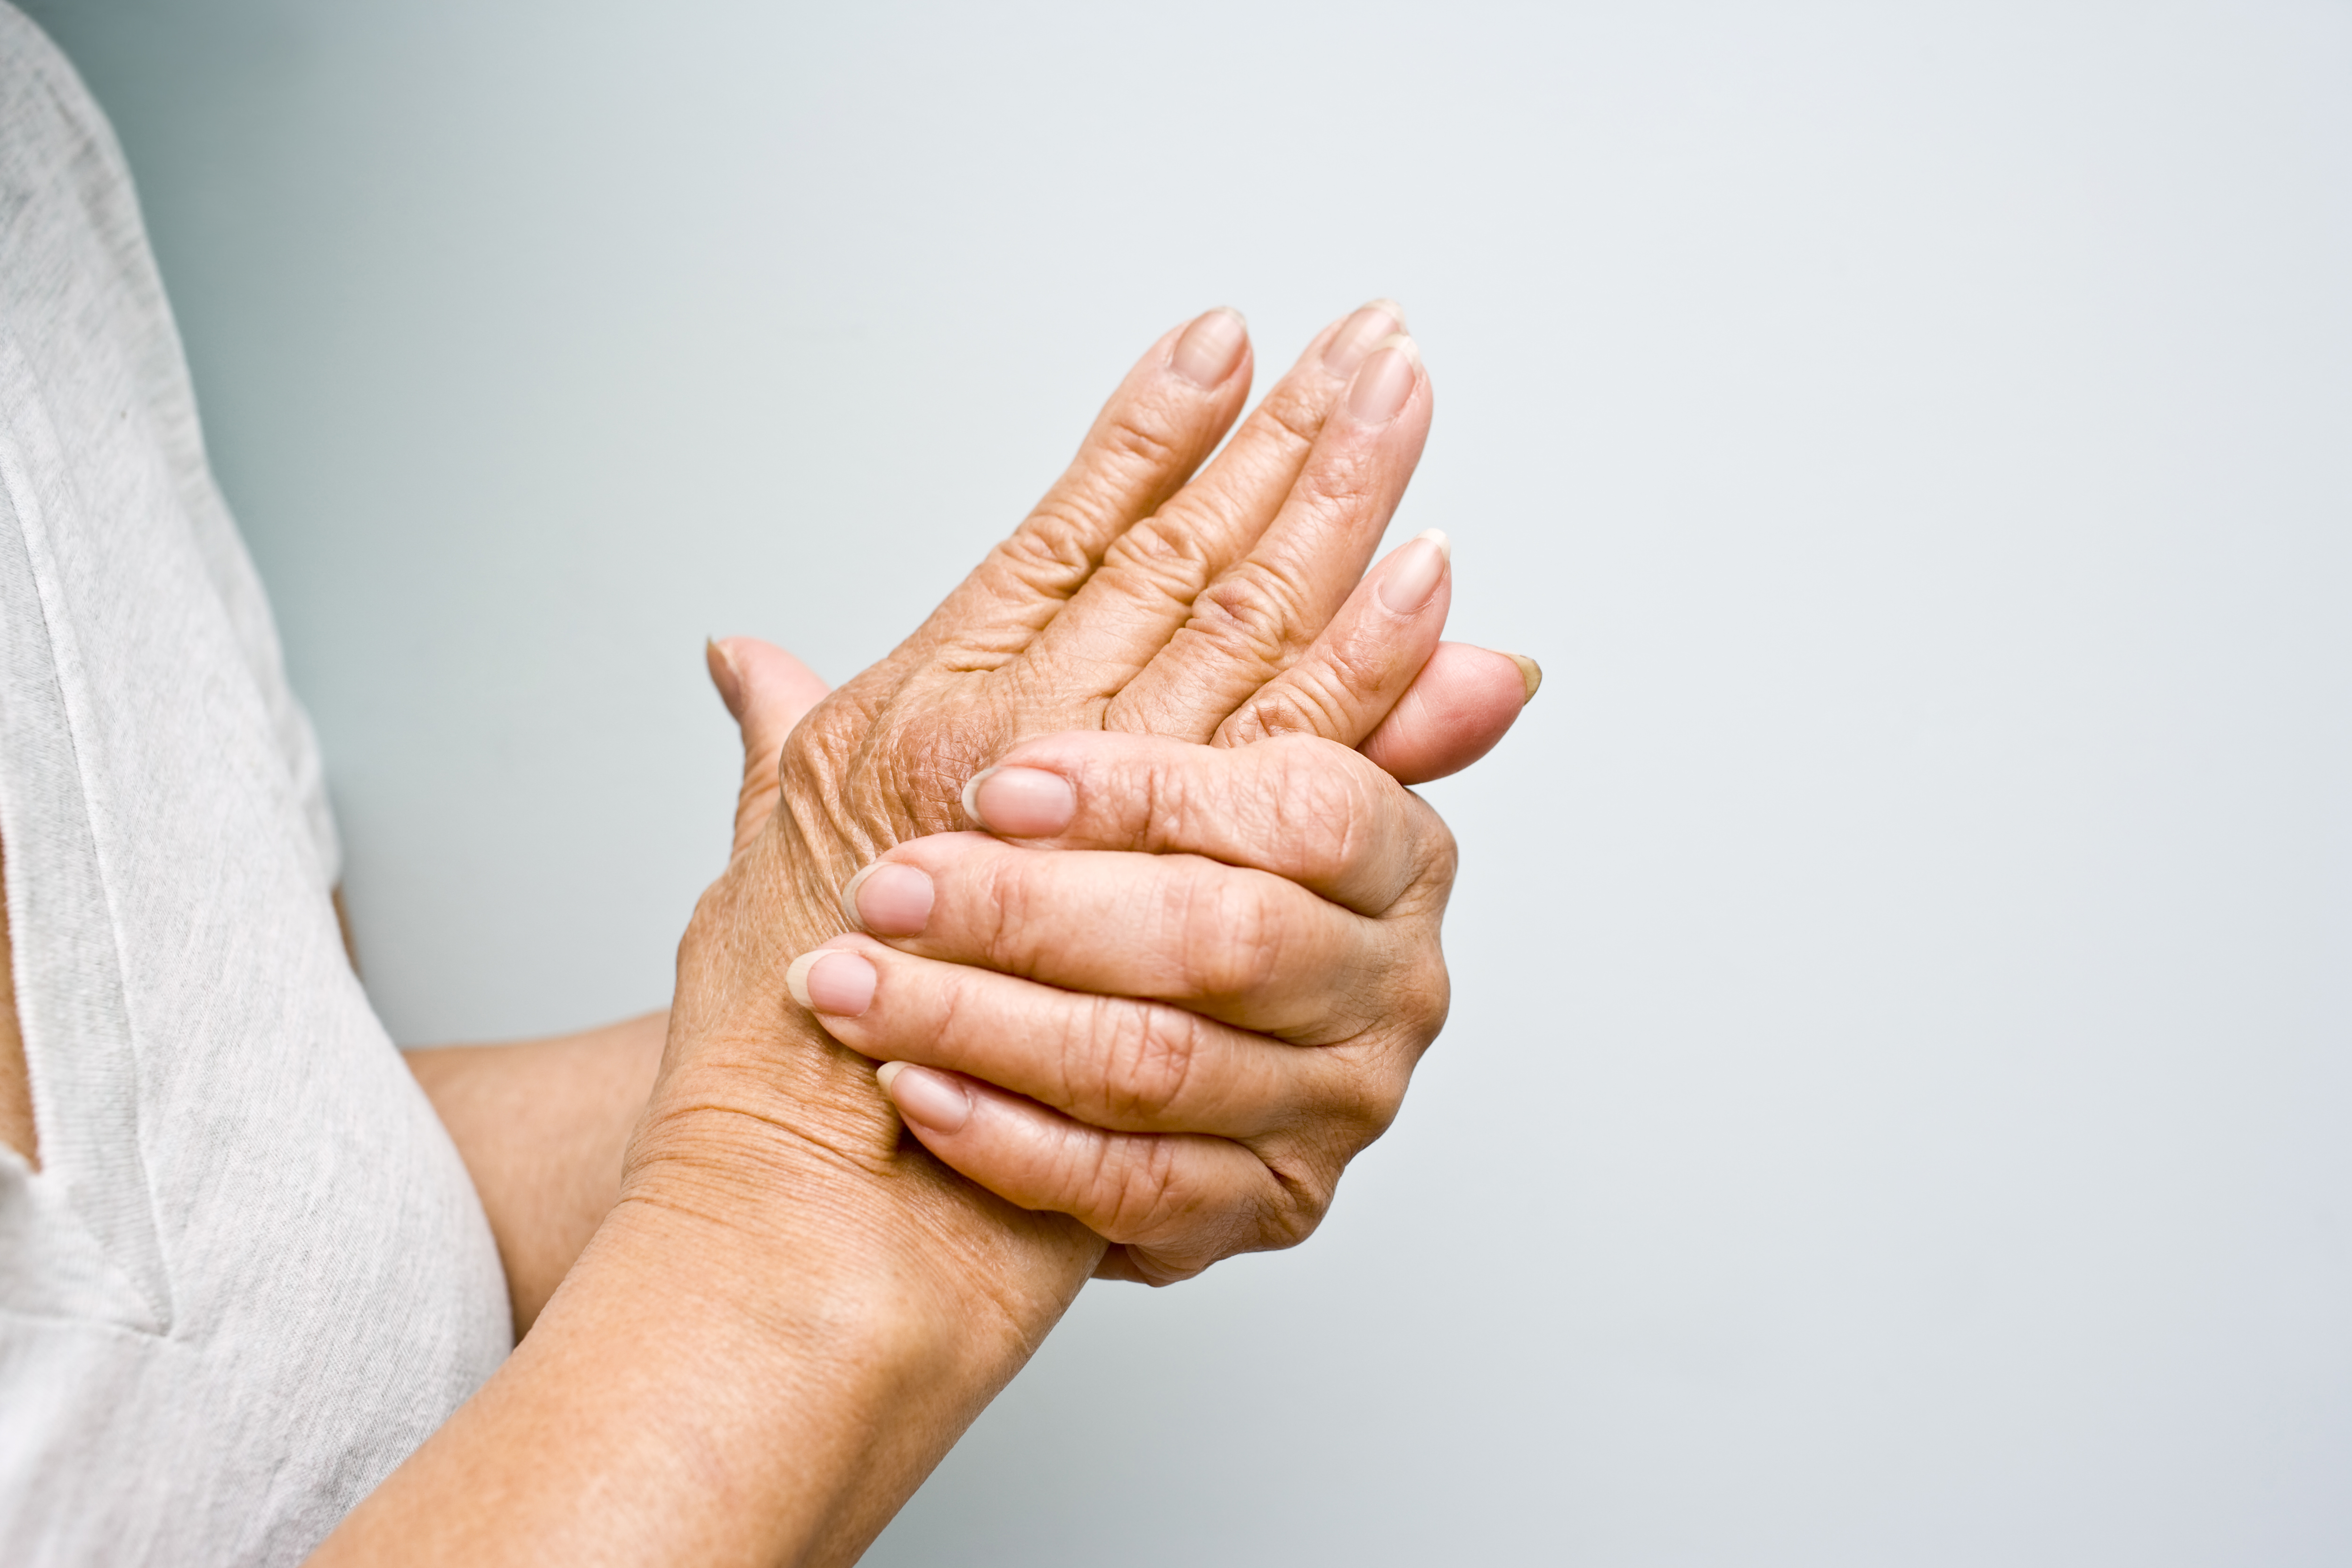 does cracking your knuckles give you arthritis